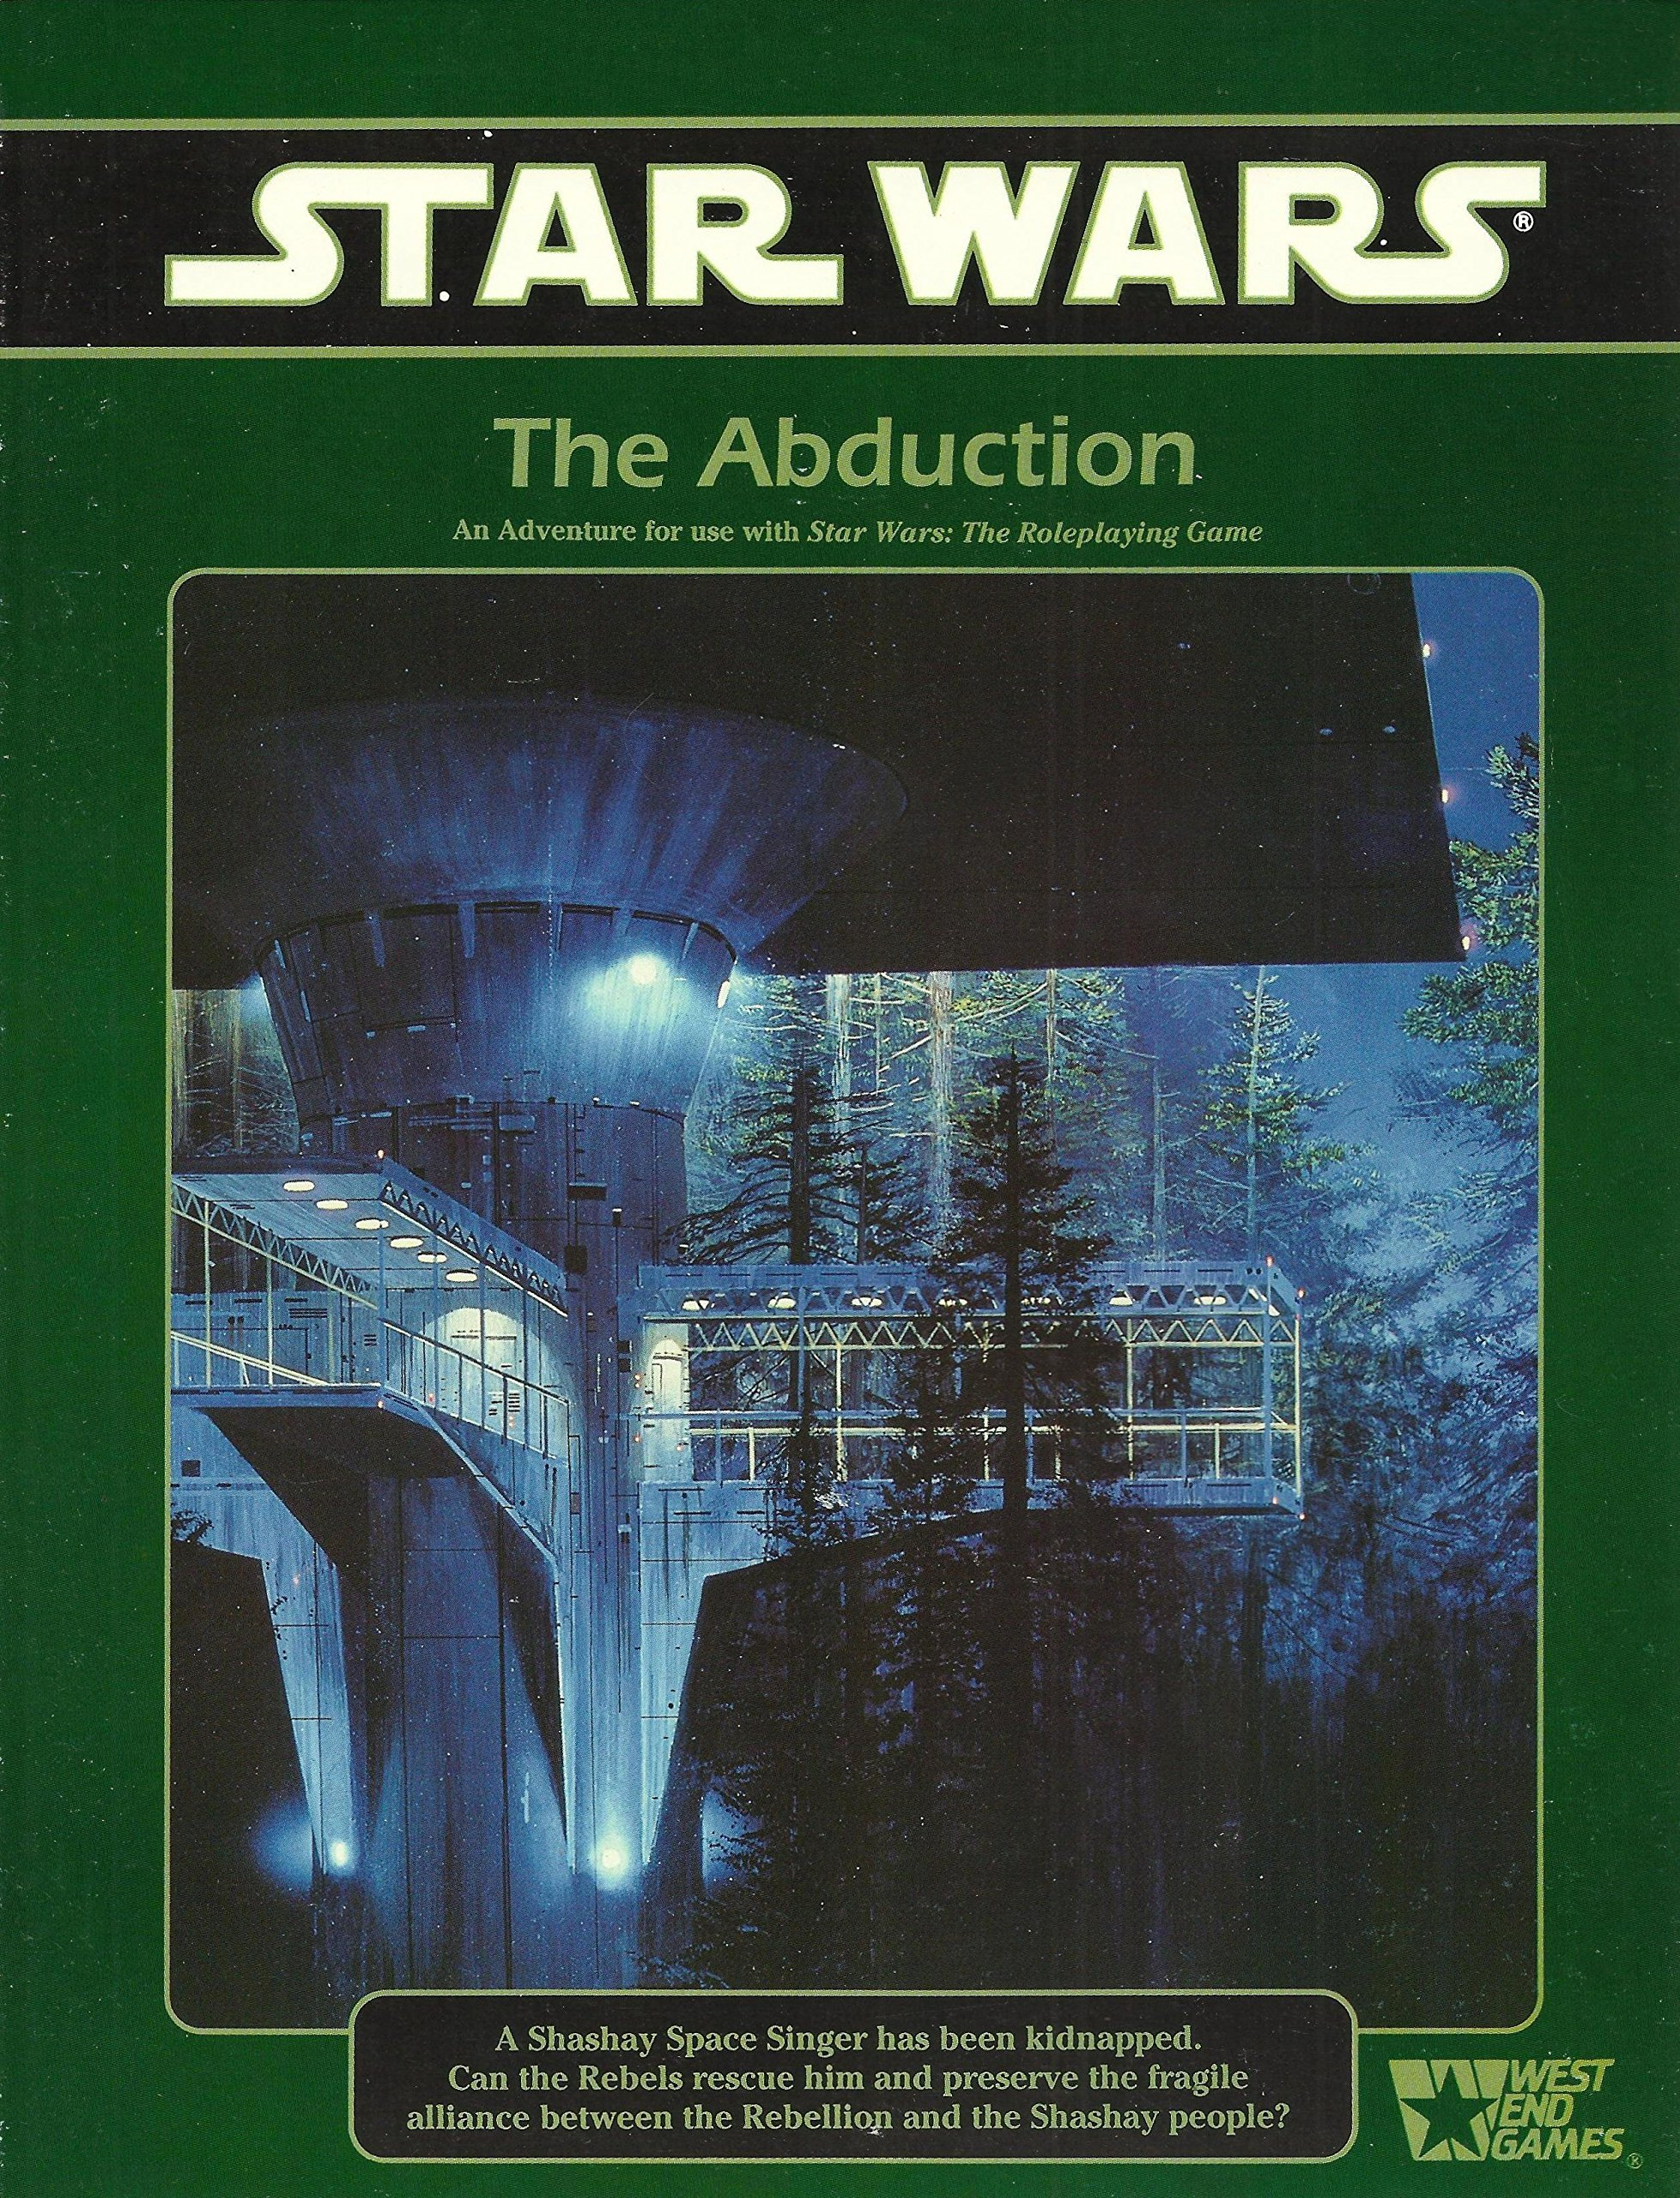 Star Wars: The Abduction